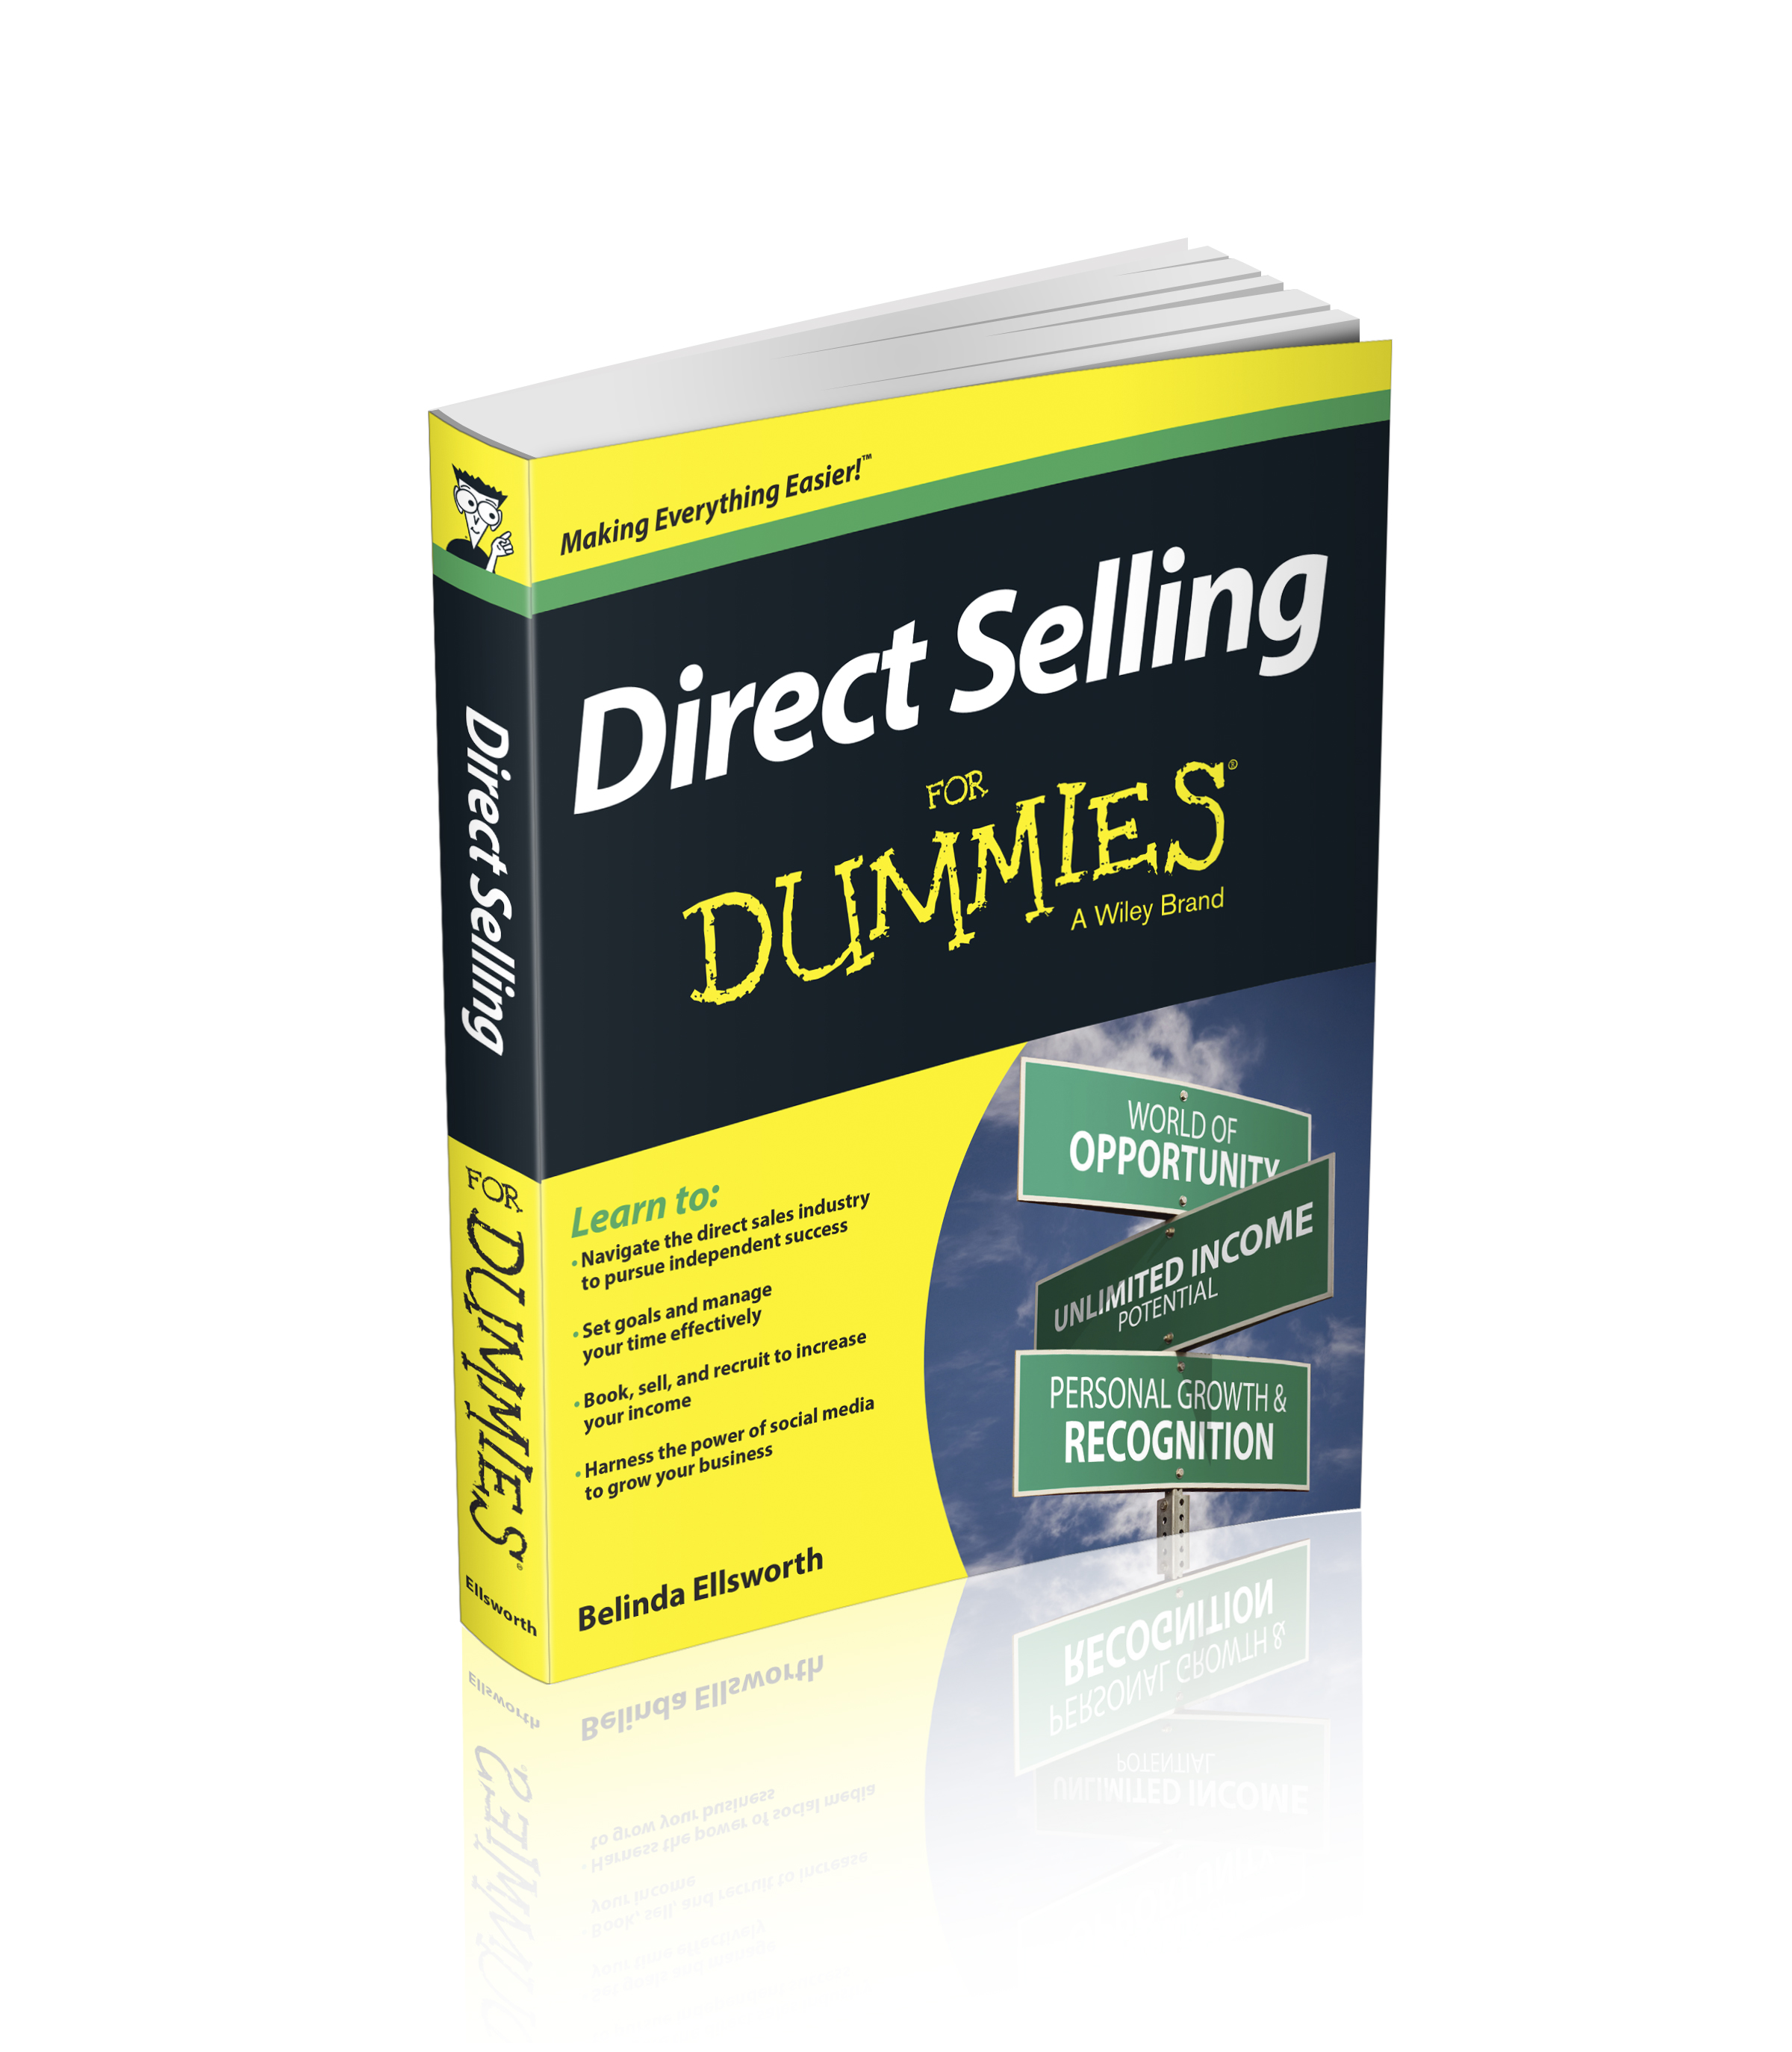 Direct selling canada